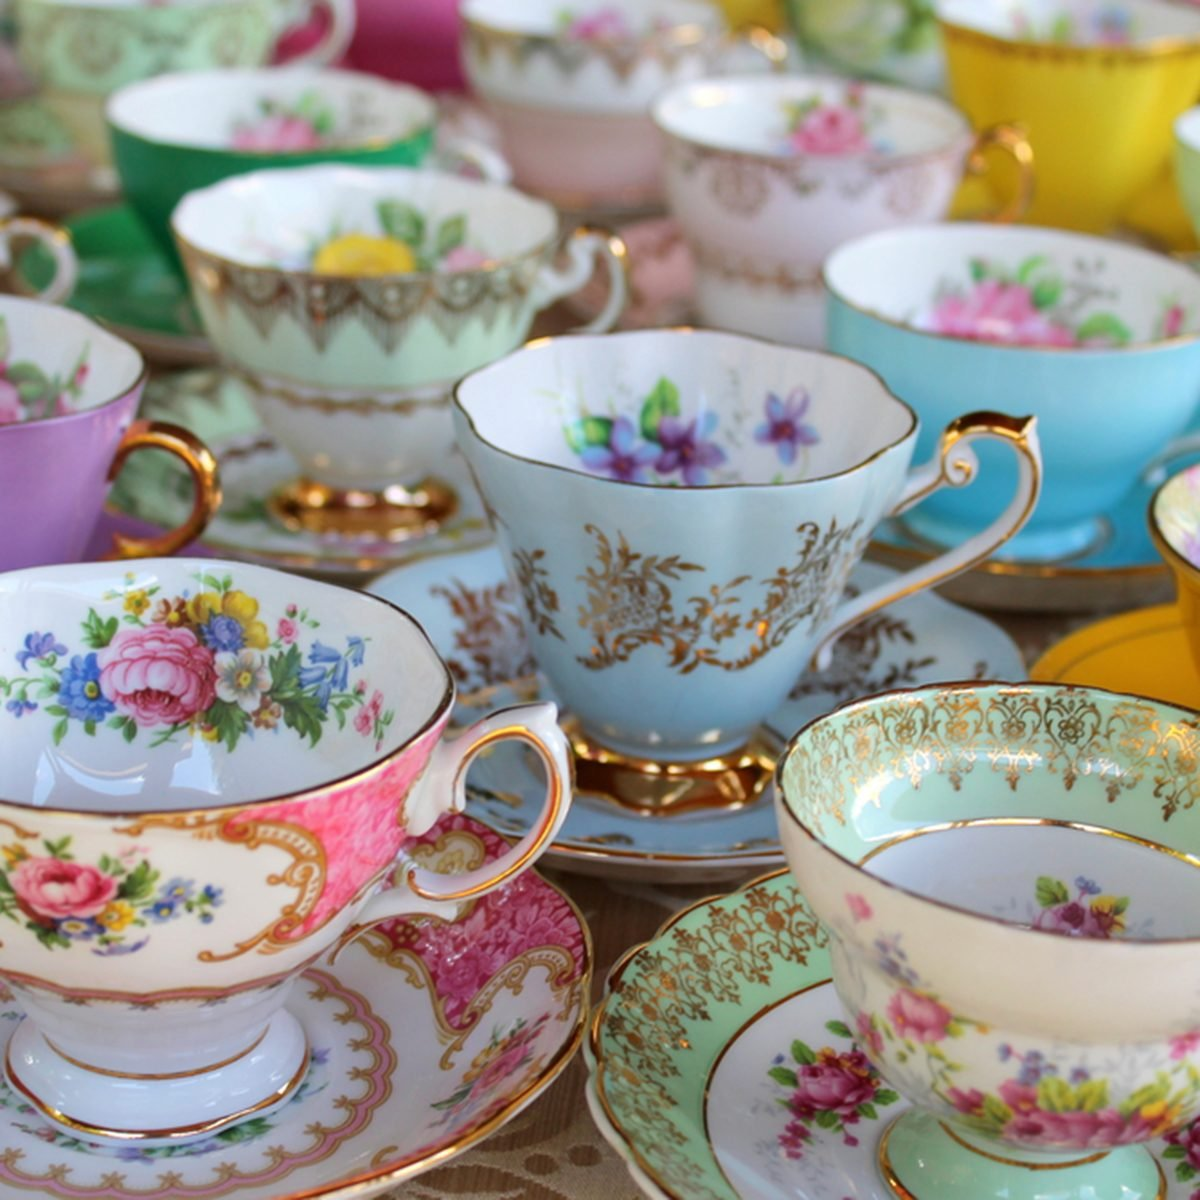 10 Things You Never Thought To Do With Your Vintage Teacups